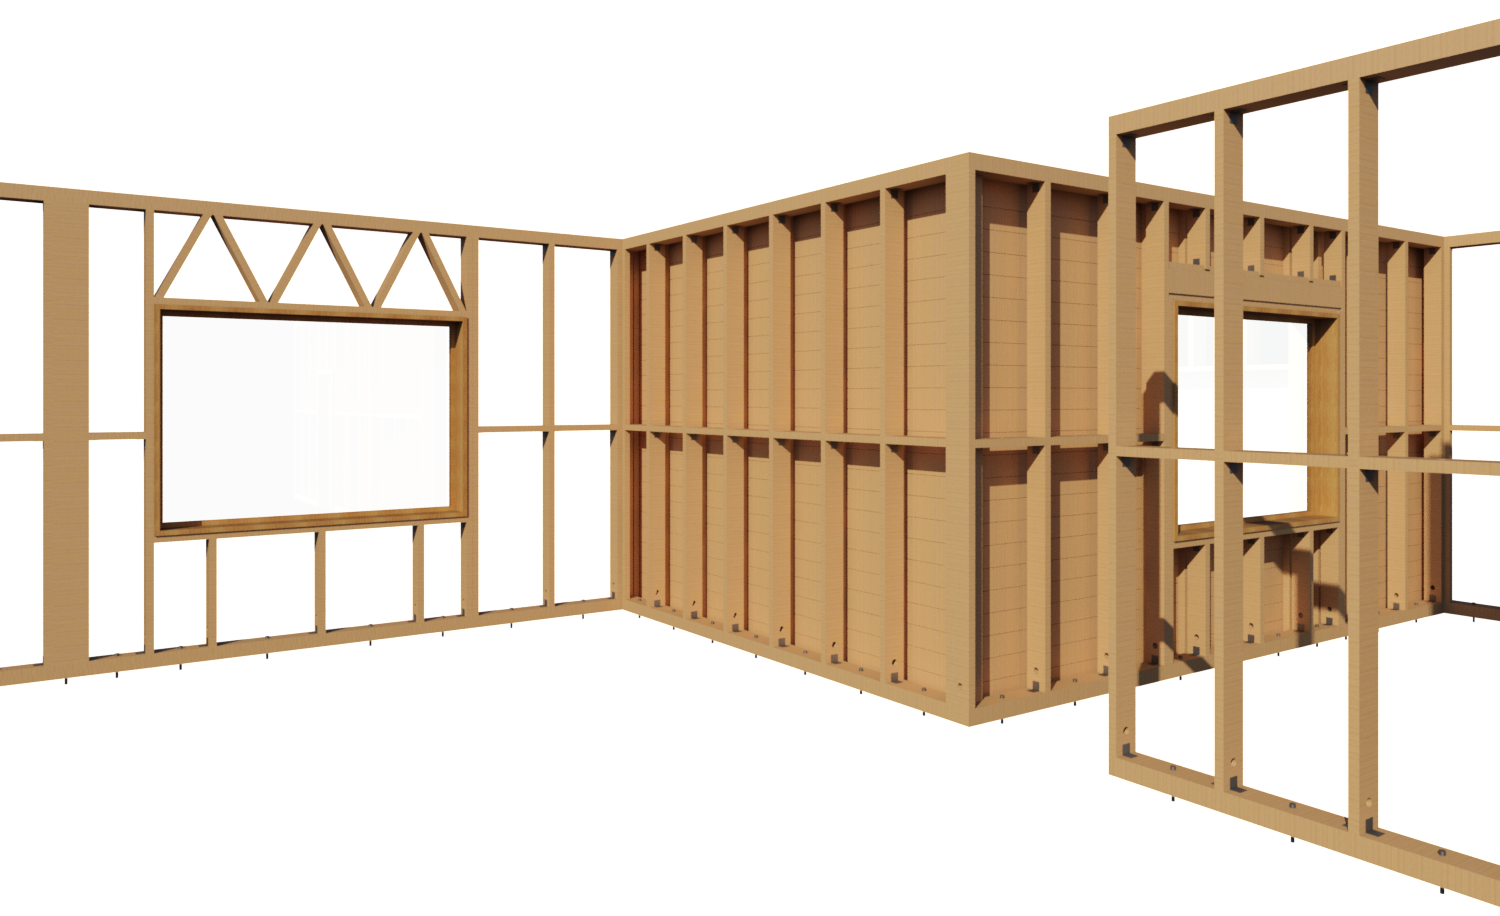 Wall Frame Structure : Framing timber walls in revit model wood wall